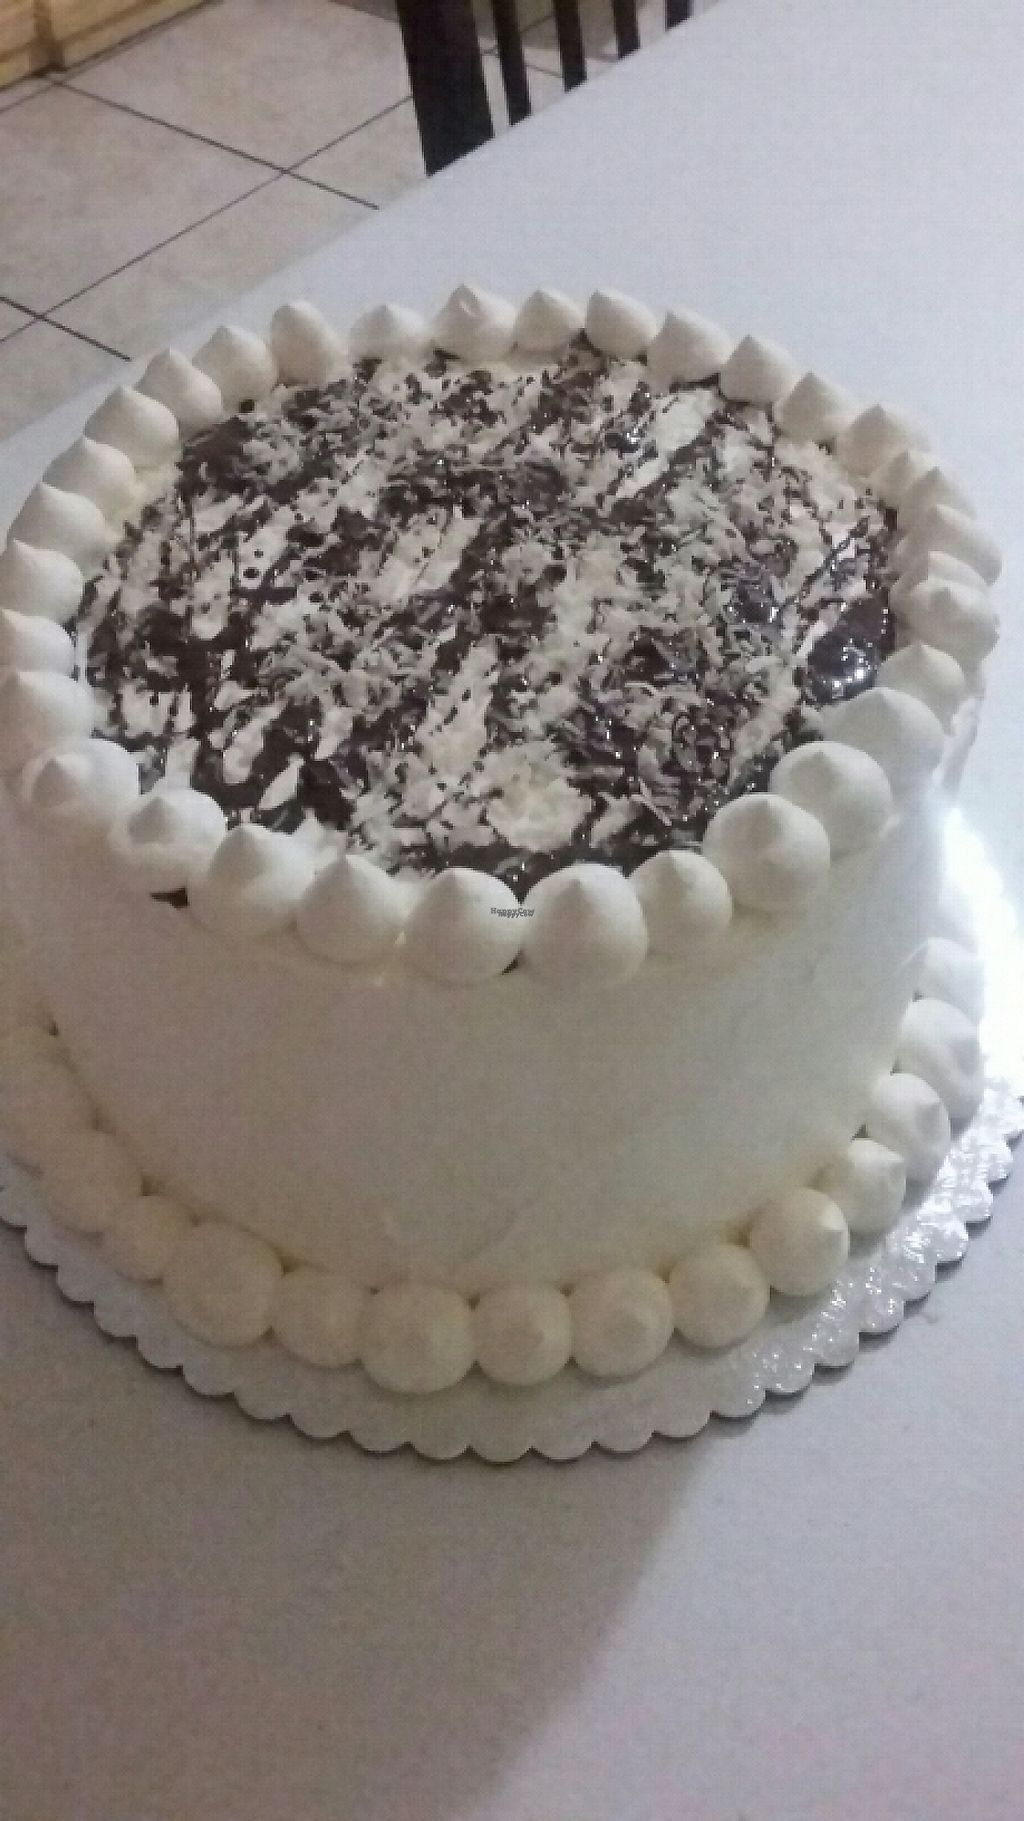 """Photo of Eco Vegan Bakery  by <a href=""""/members/profile/aracelisup"""">aracelisup</a> <br/>Samoa Cake (chocolate cake with date caramel, topped with shredded coconut and melted chocolate) <br/> December 19, 2016  - <a href='/contact/abuse/image/83312/202812'>Report</a>"""